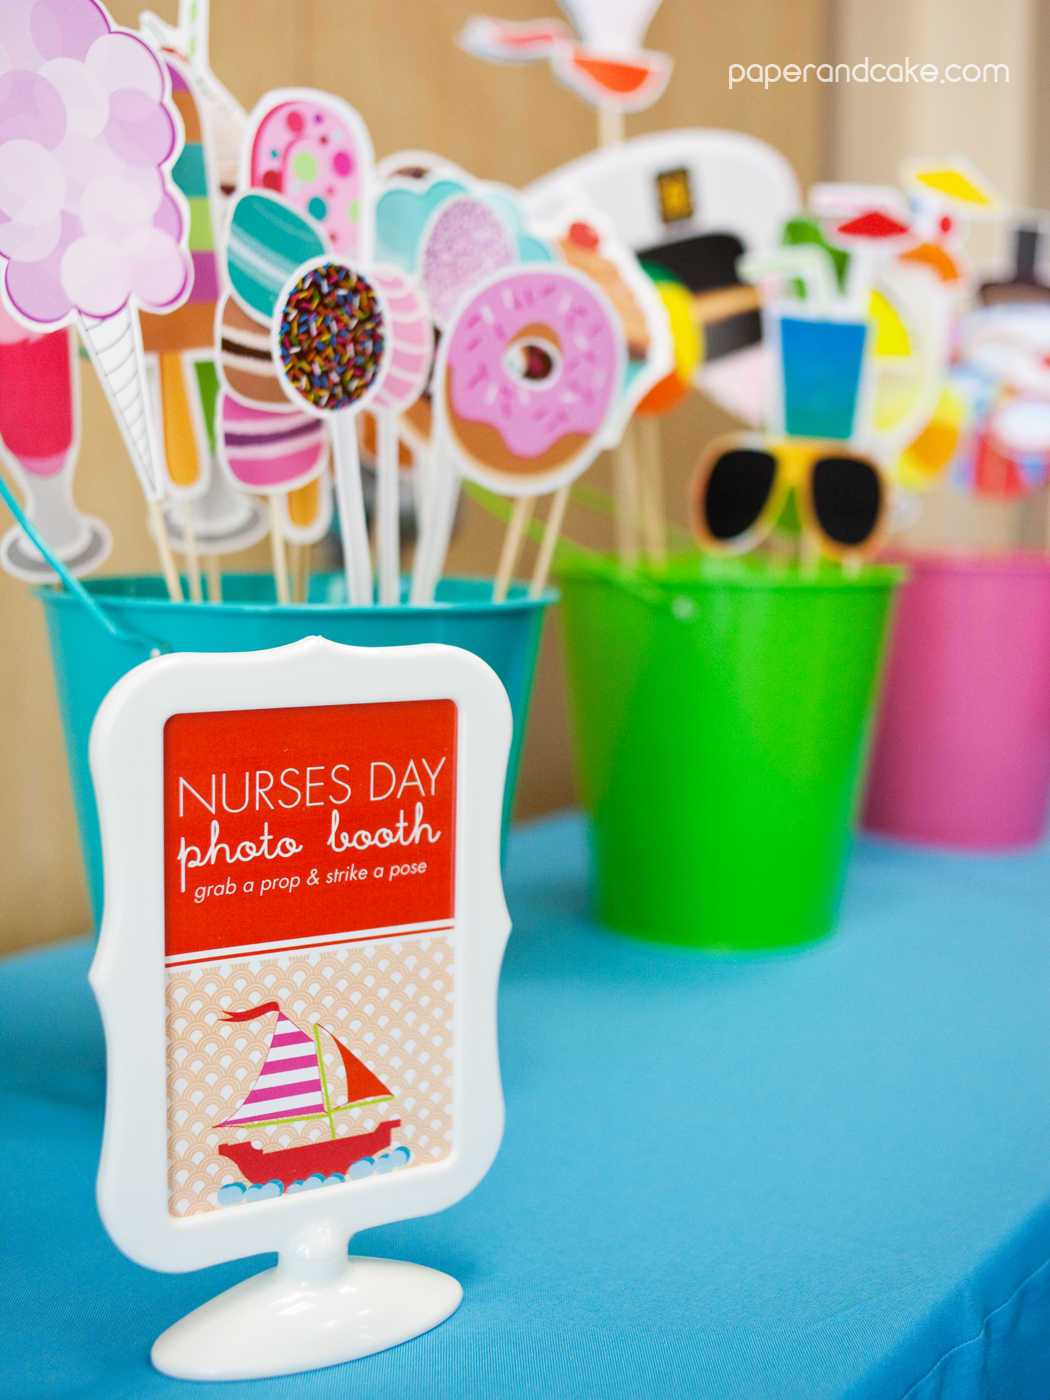 Corporate Event Ideas Nurses Day Paper And Cake Paper